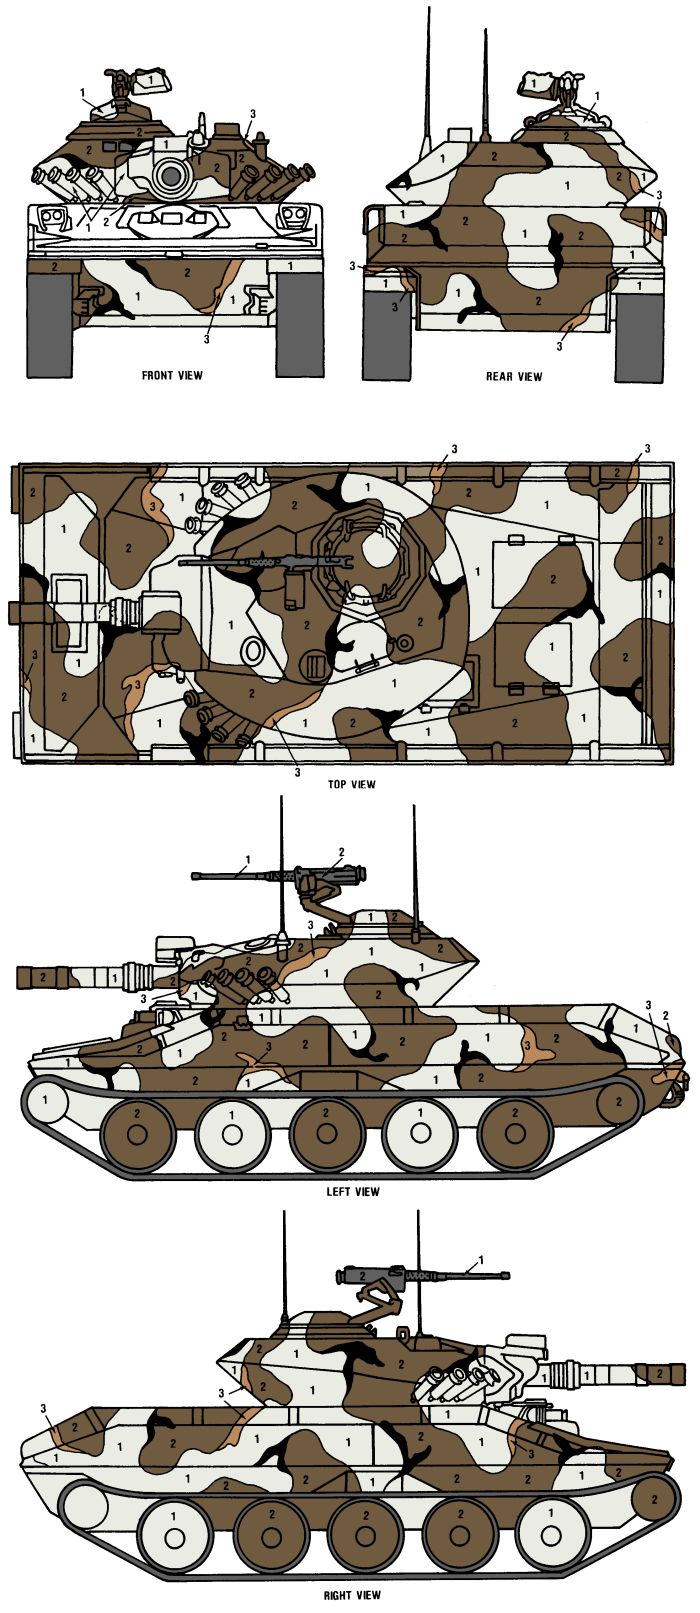 153 best camouflage images on Pinterest | Camo patterns ...